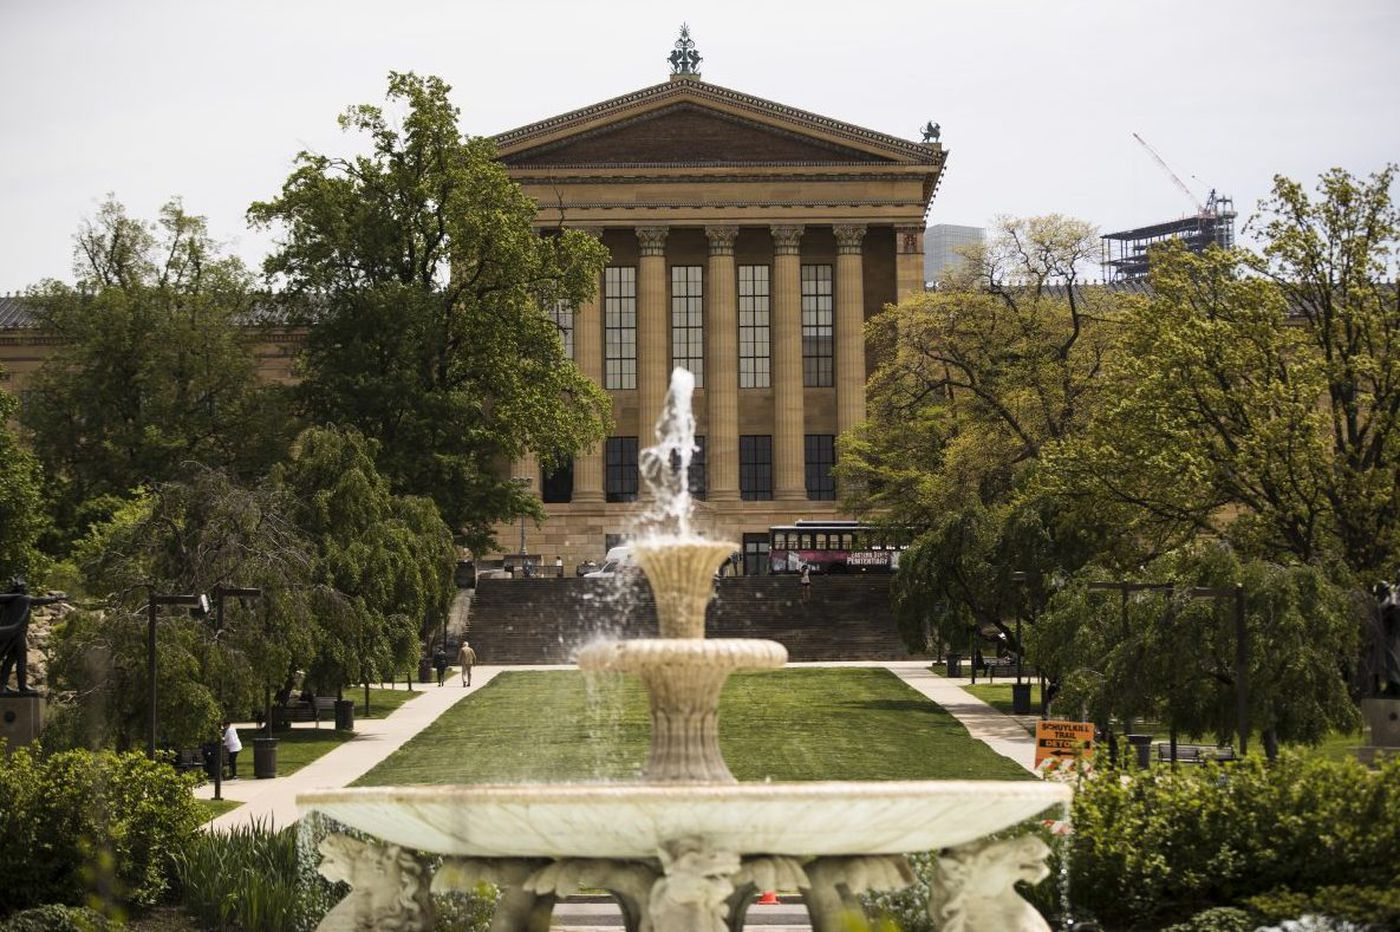 Philly moves to slash energy use, starting with $9M retrofit of Art Museum